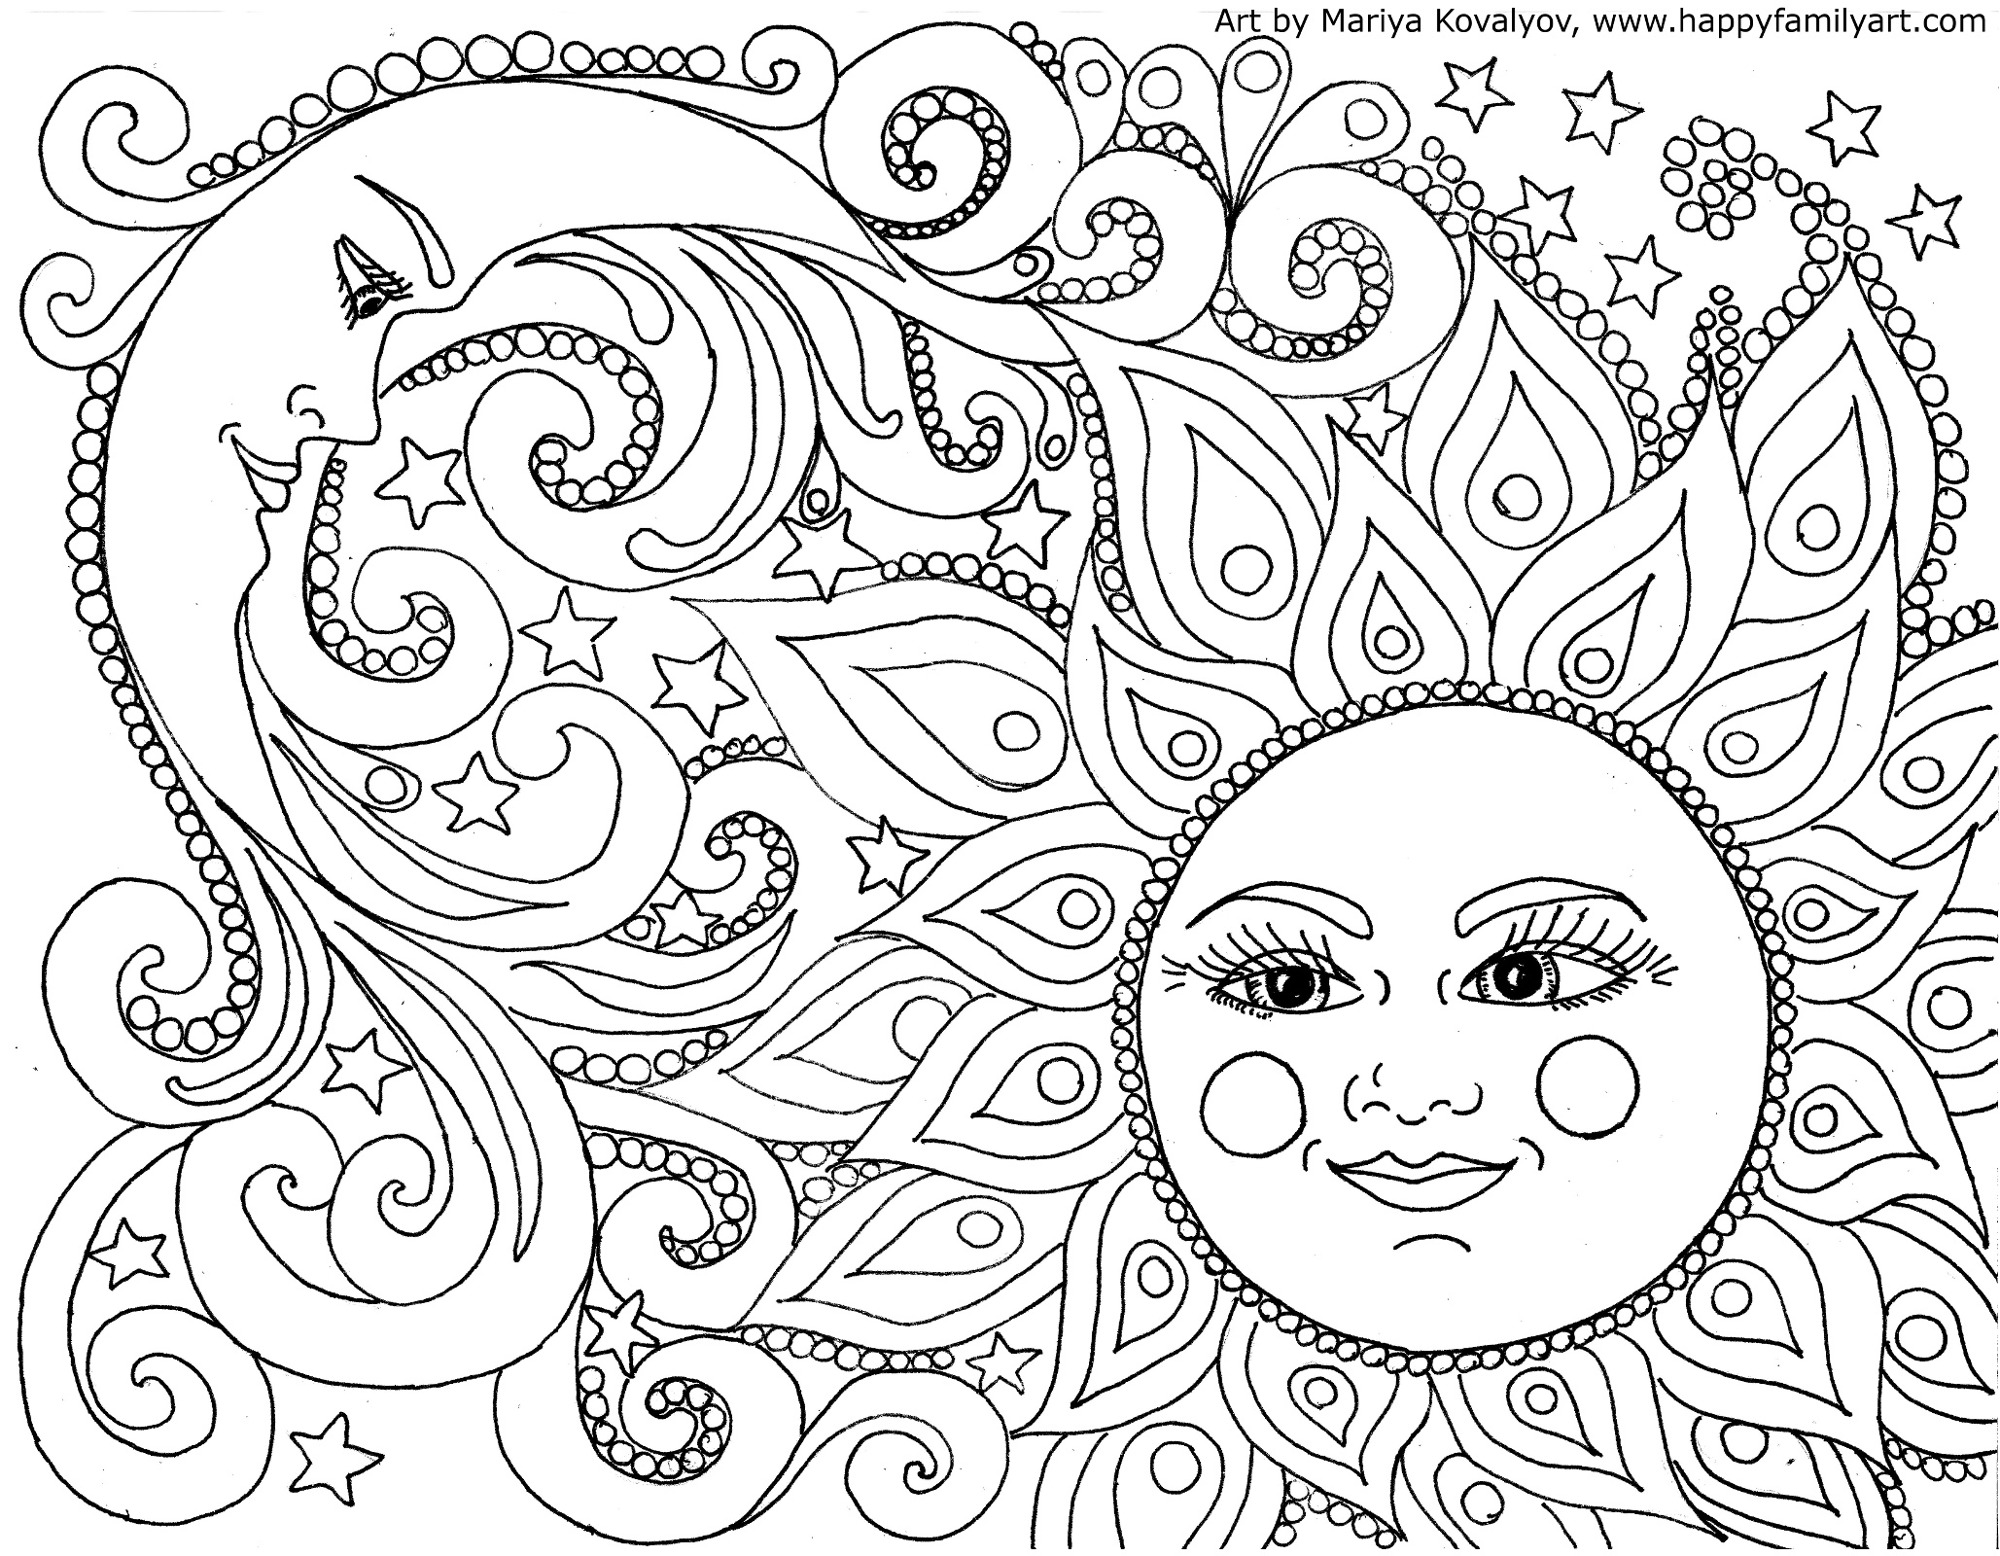 happy family art original and fun coloring pages - Colouring Pages Of Books